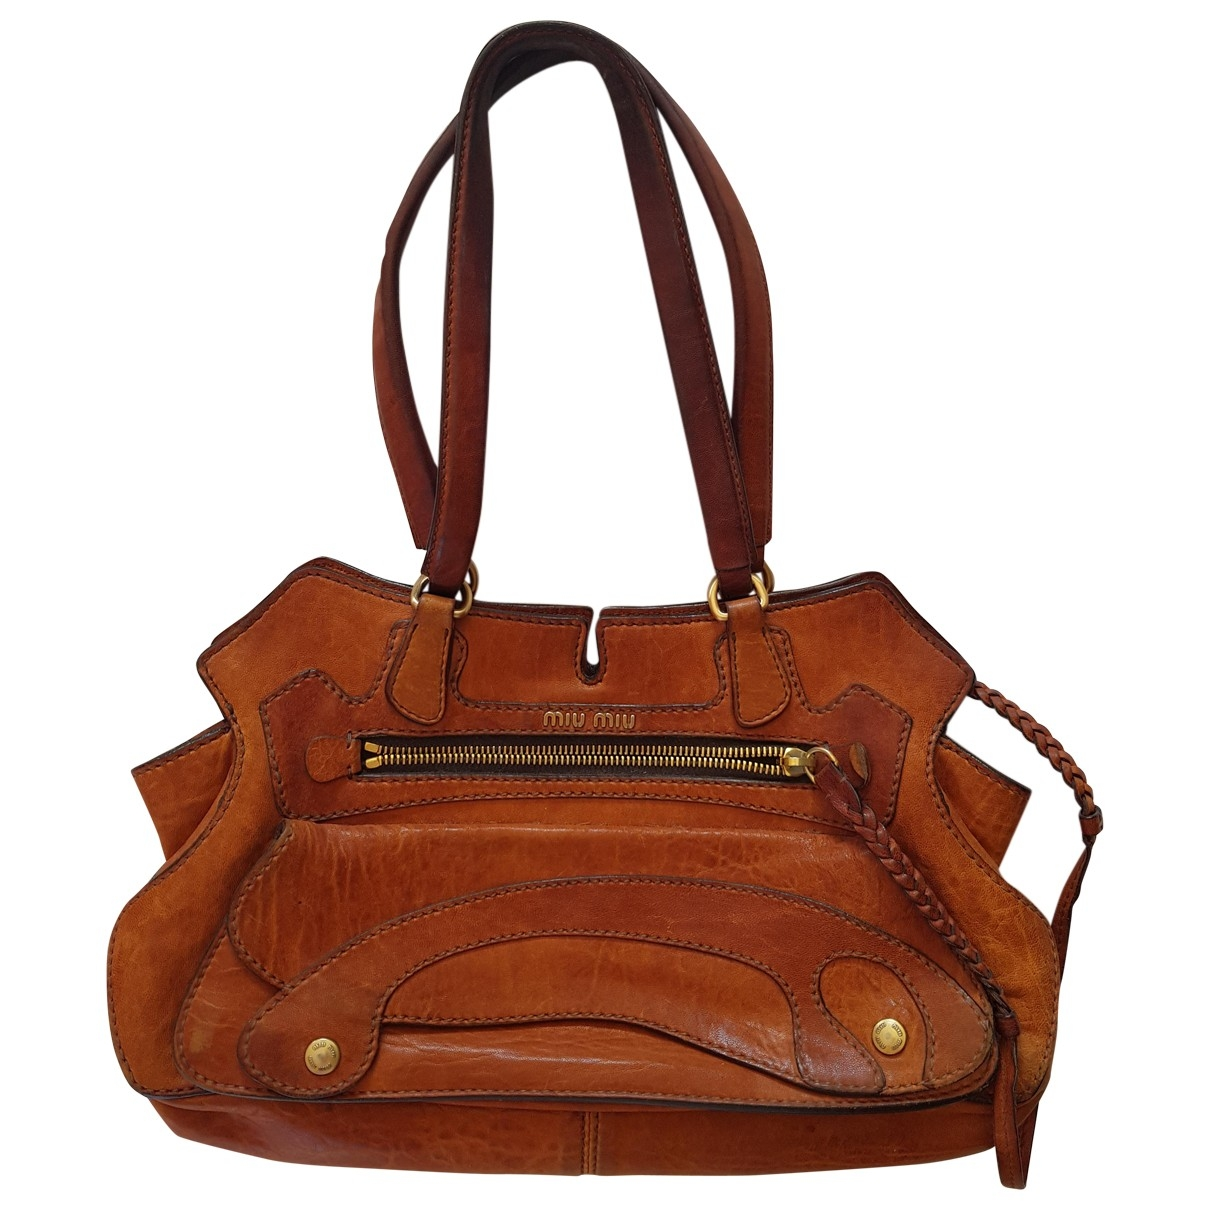 Miu Miu \N Brown Leather handbag for Women \N